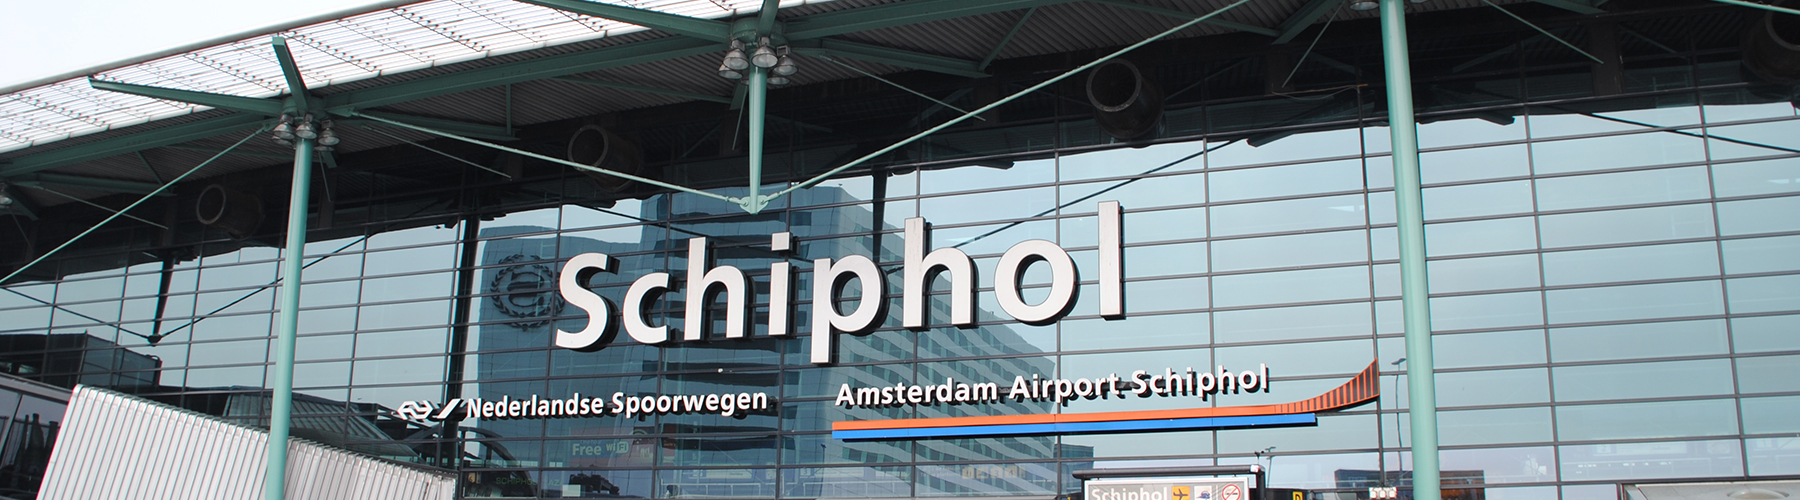 Amsterdam – Hostels close to Amsterdam Airport Schiphol. Maps for Amsterdam, Photos and Reviews for each hostel in Amsterdam.